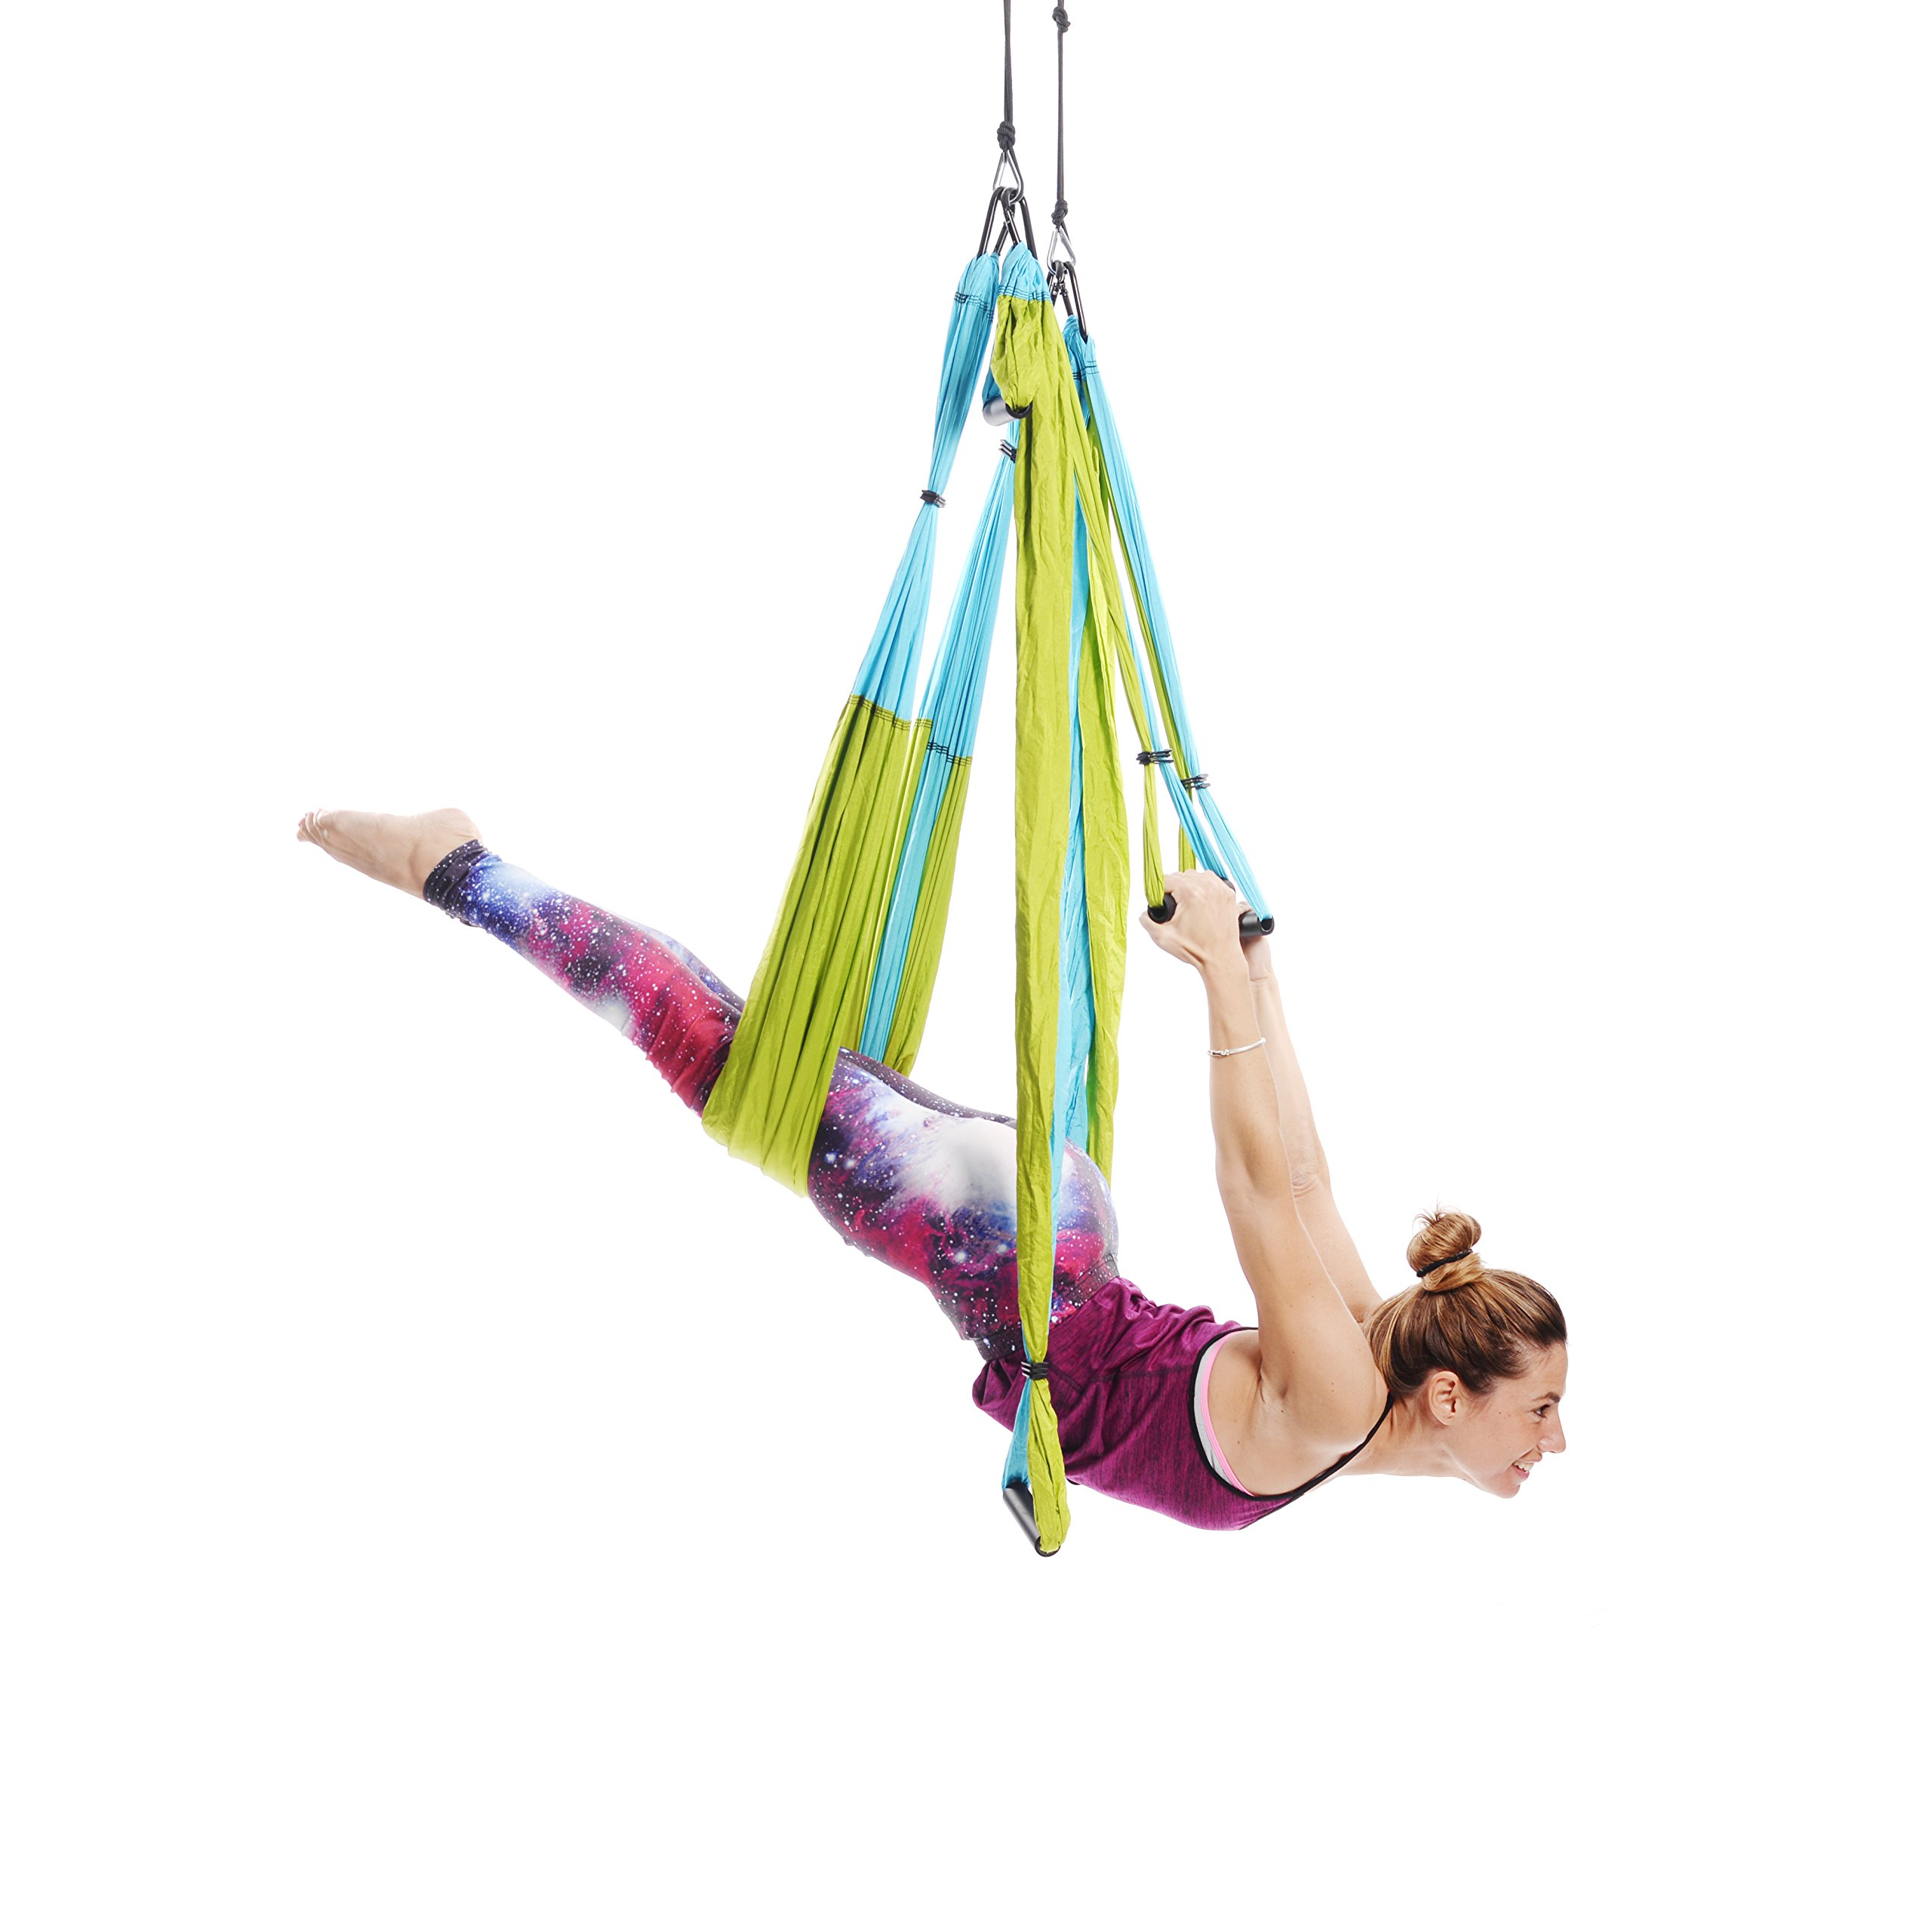 Yoga Trapeze [official] – Yoga Swing/Sling/Inversion Tool, Blue/Green by YOGABODY – with Free DVD by YOGABODY